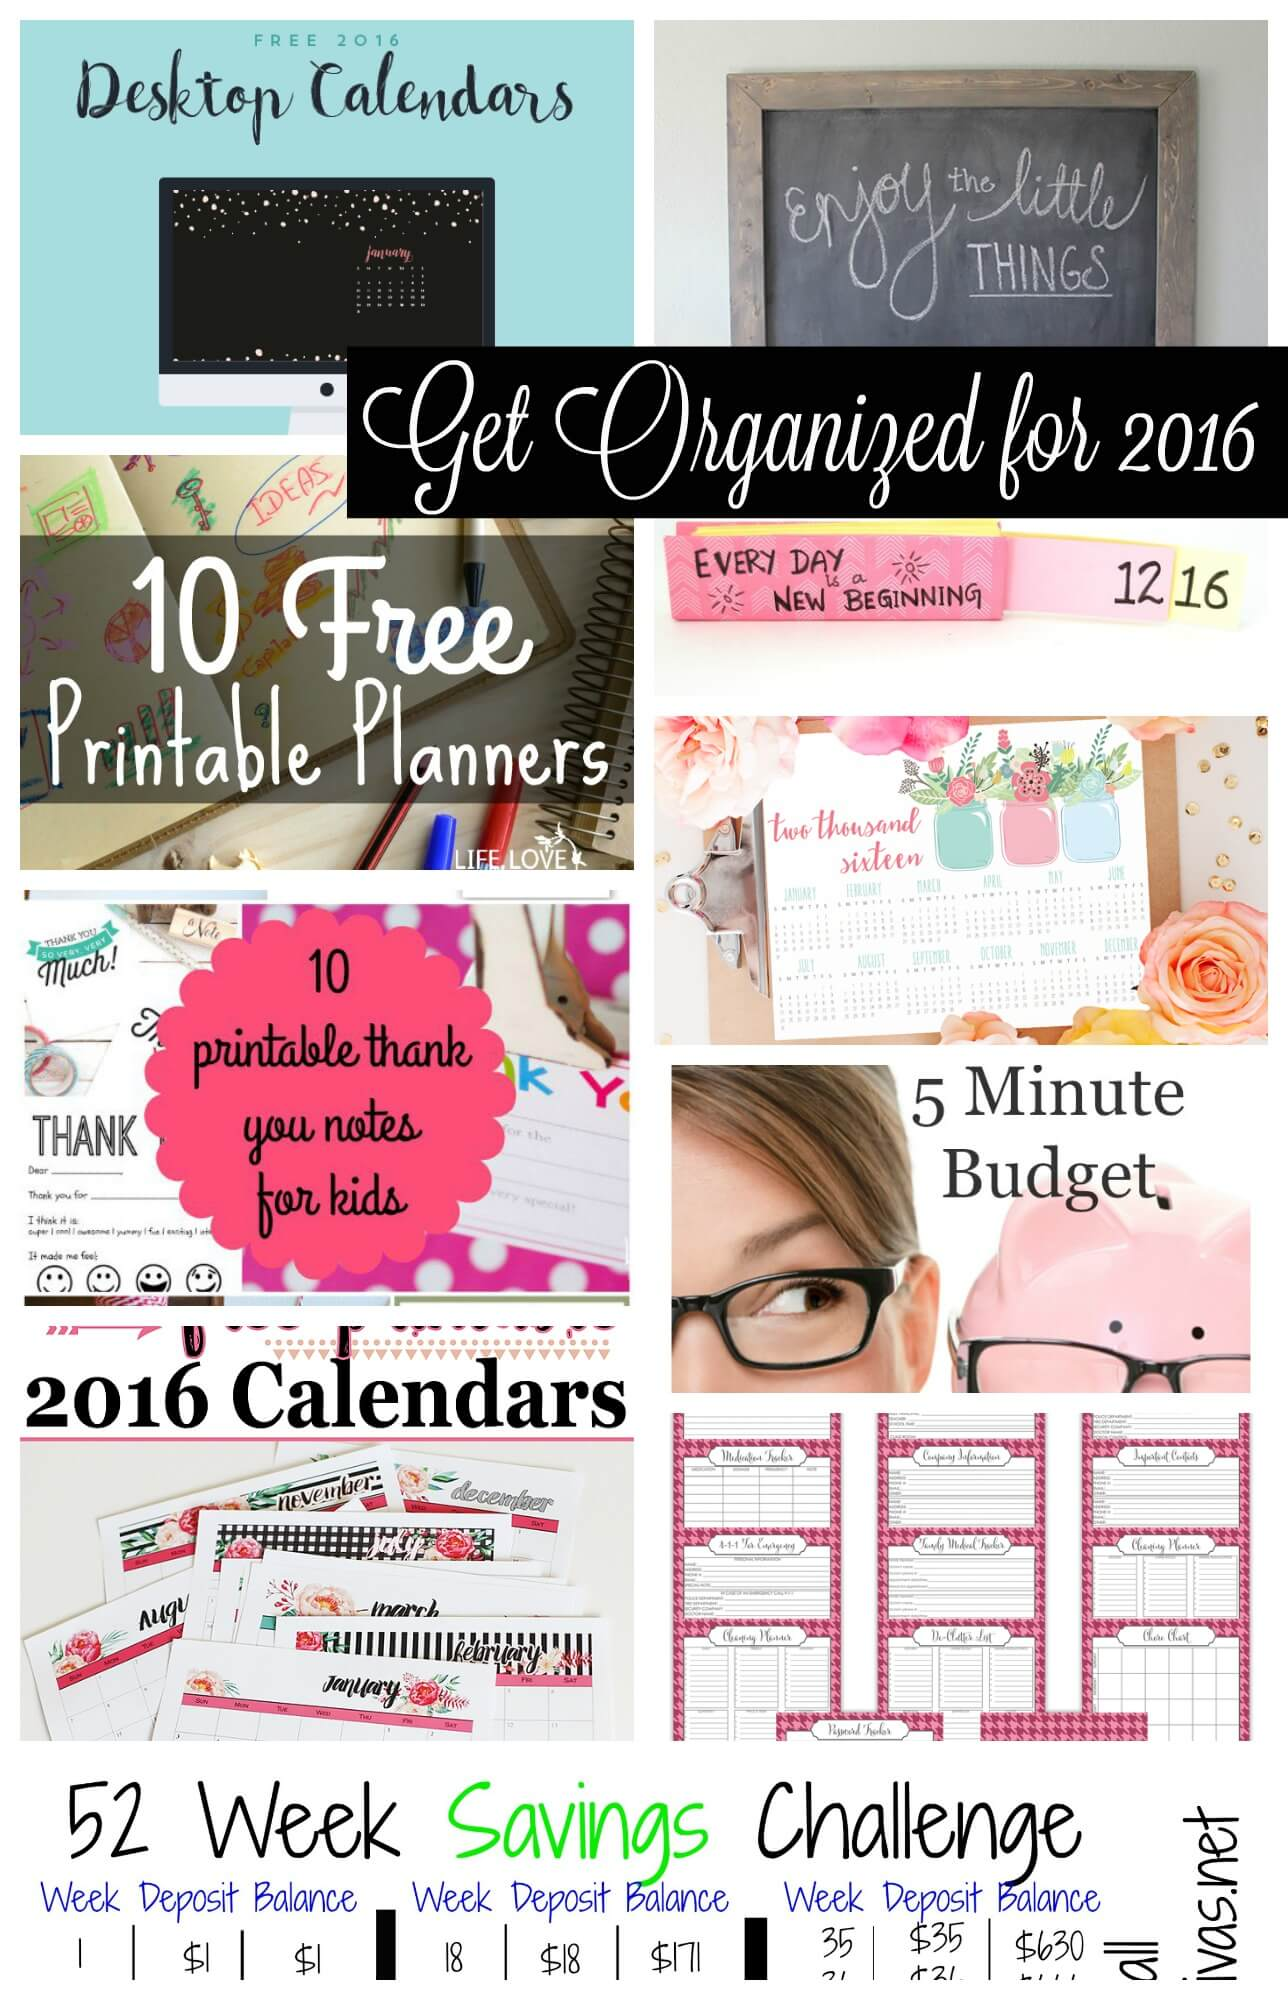 Get Organized for 2016 collection of free printables and calendars from Nap-Time Creations